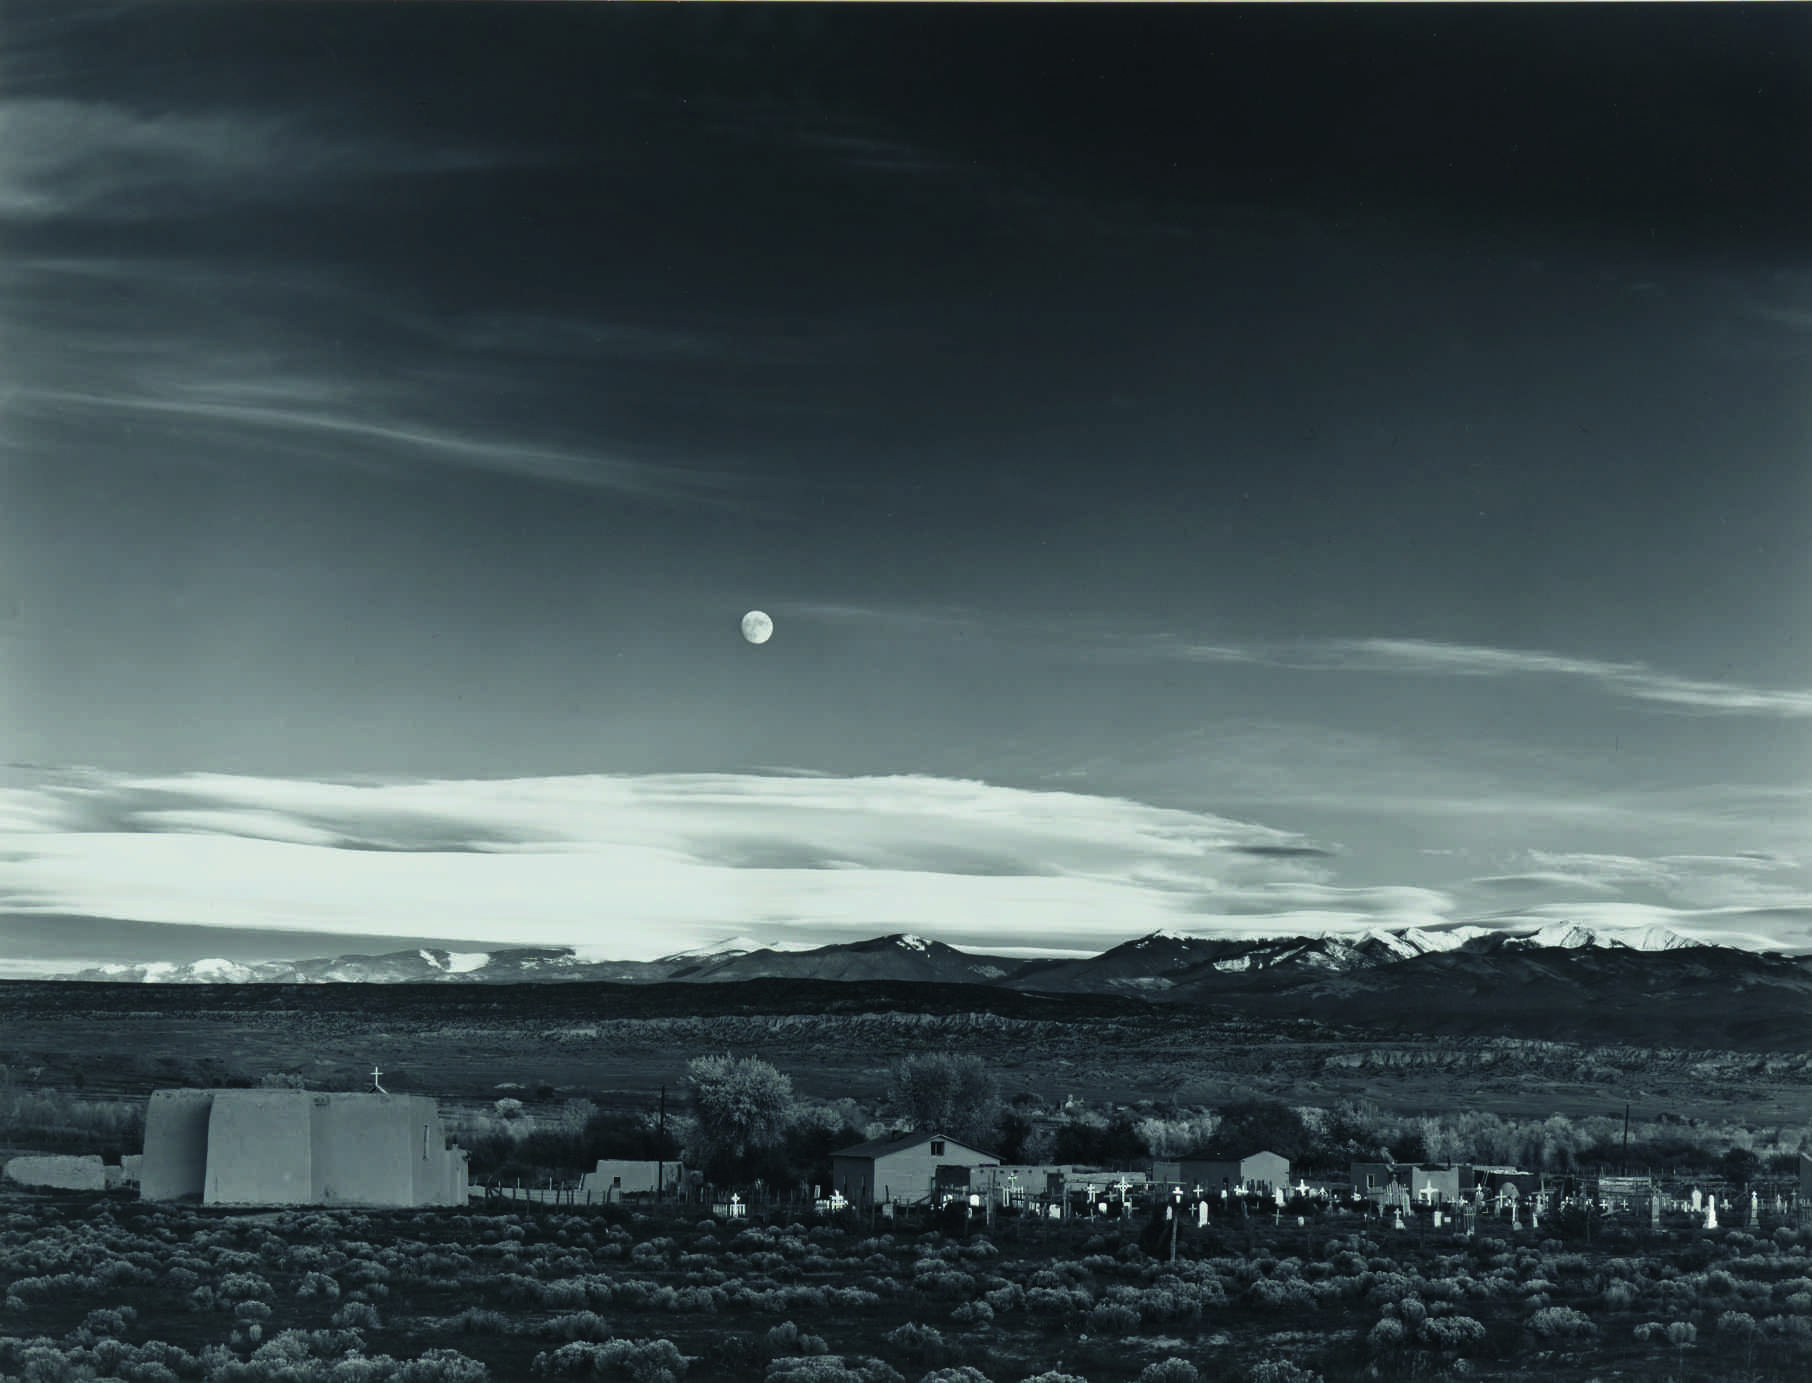 A Grand Vision. Gli scatti di Ansel Adams in asta da Sotheby's New York